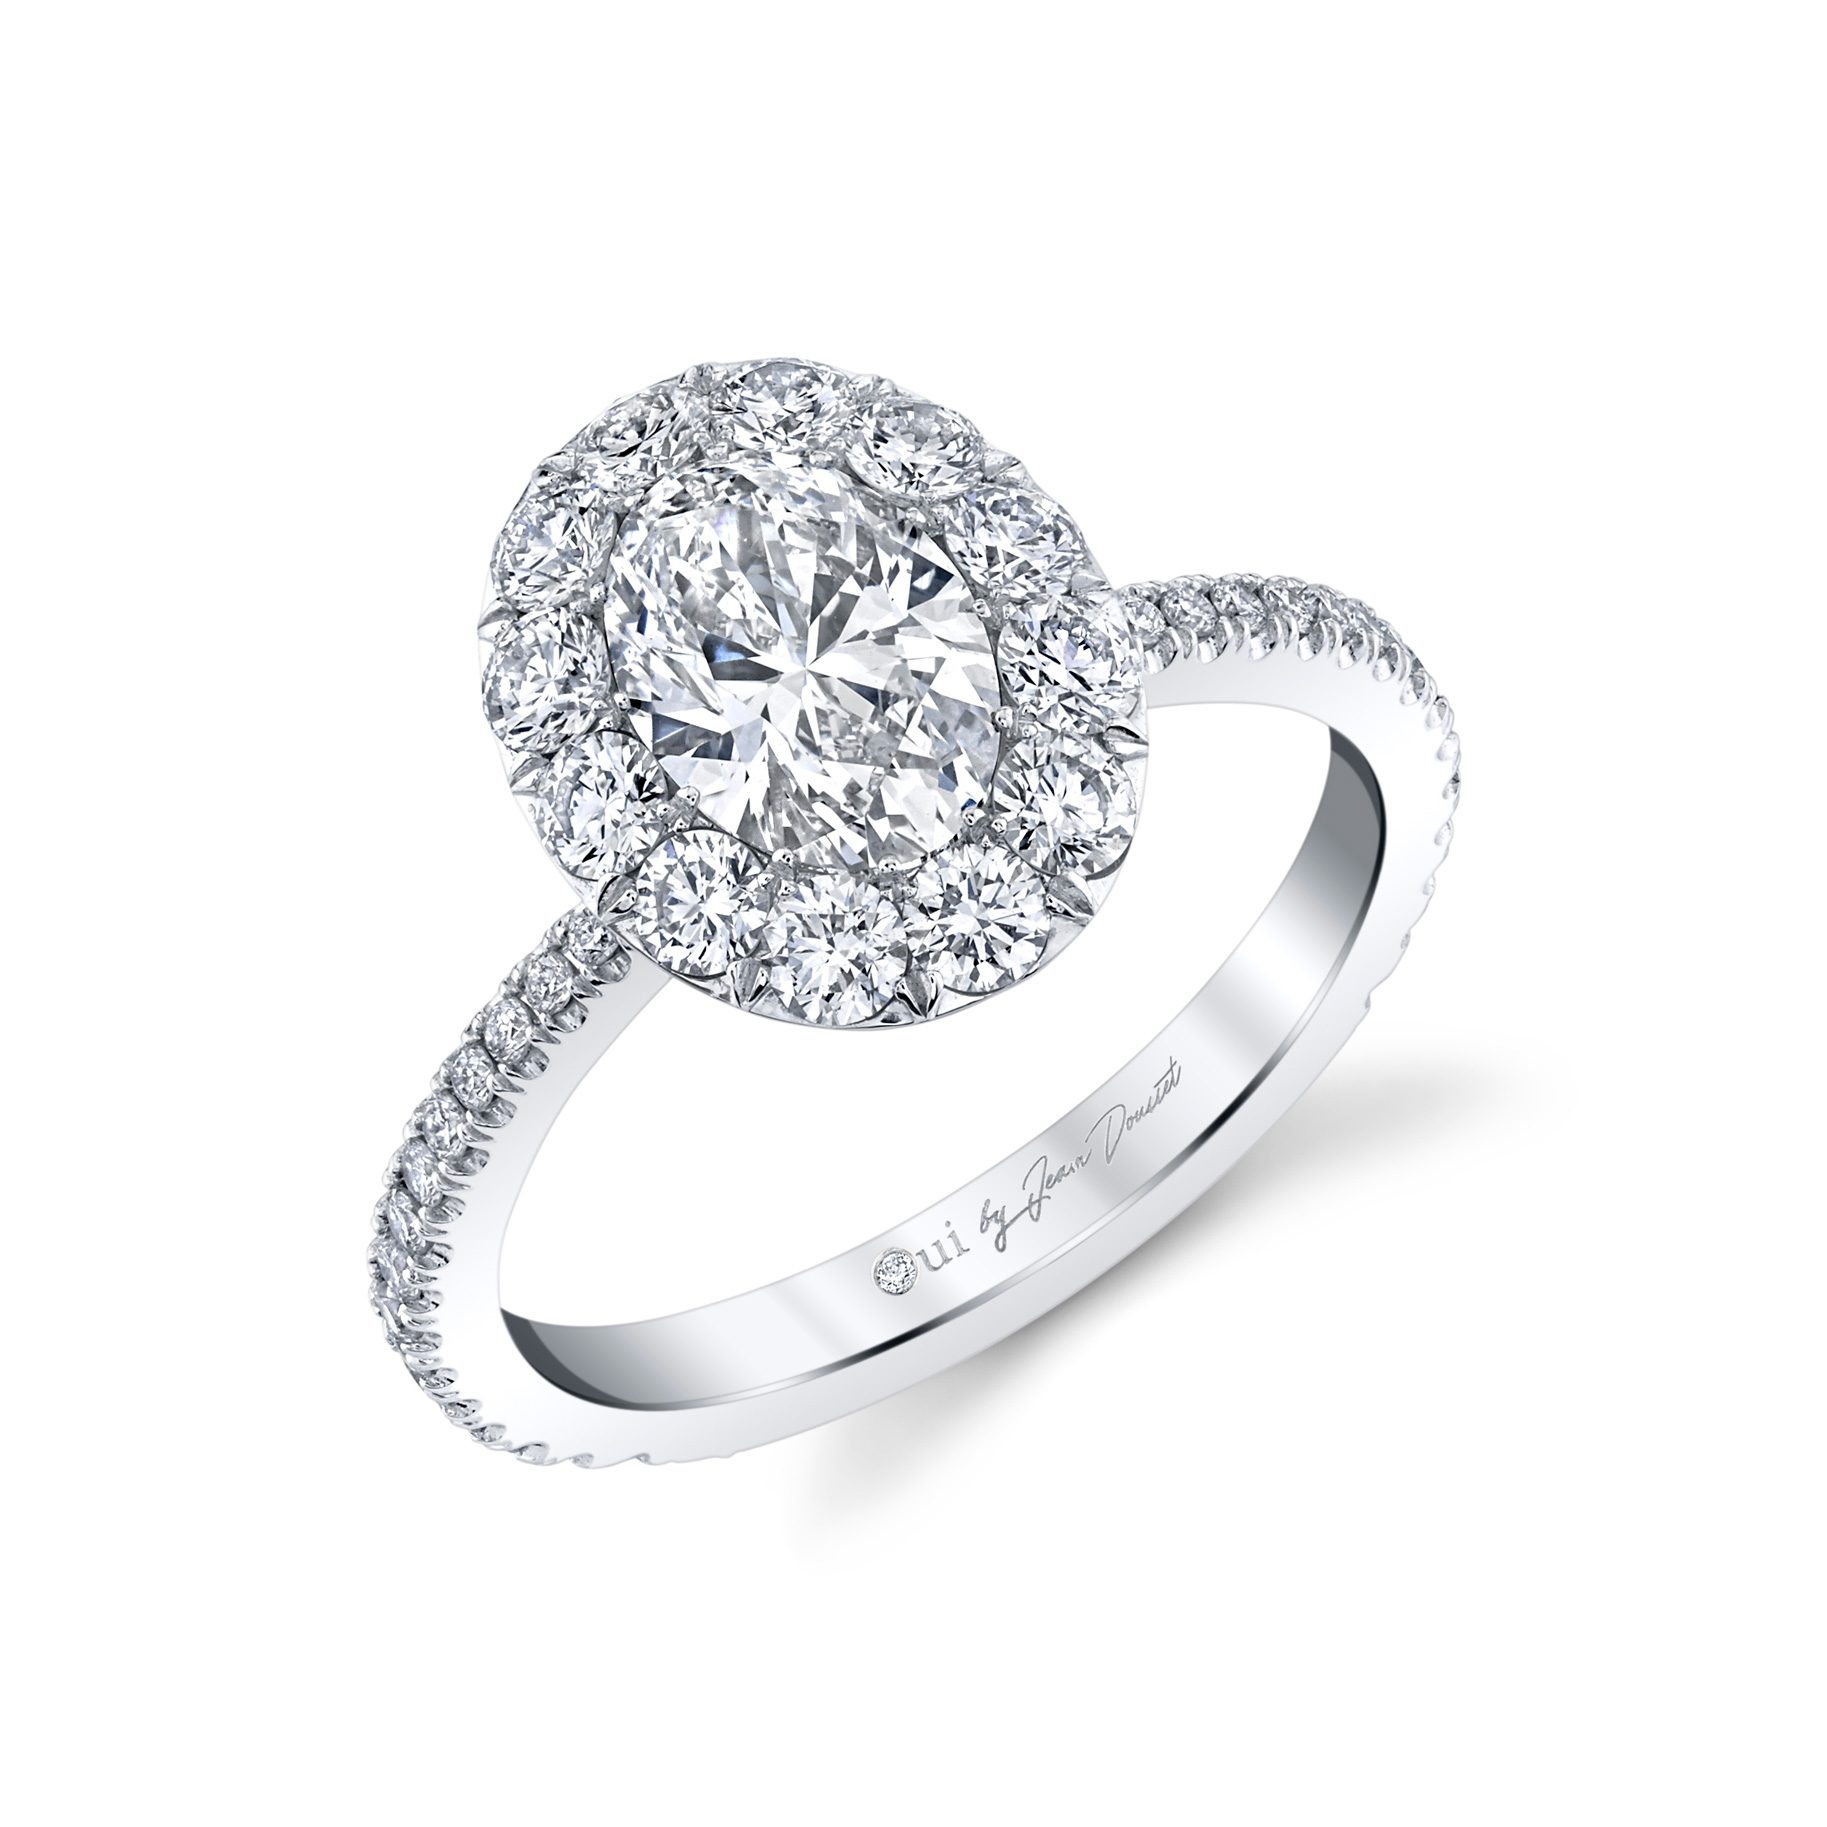 Eloise Oval Seamless Solitaire® Engagement Ring with diamond pavé in 18k White Gold Profile View by Oui by Jean Dousset